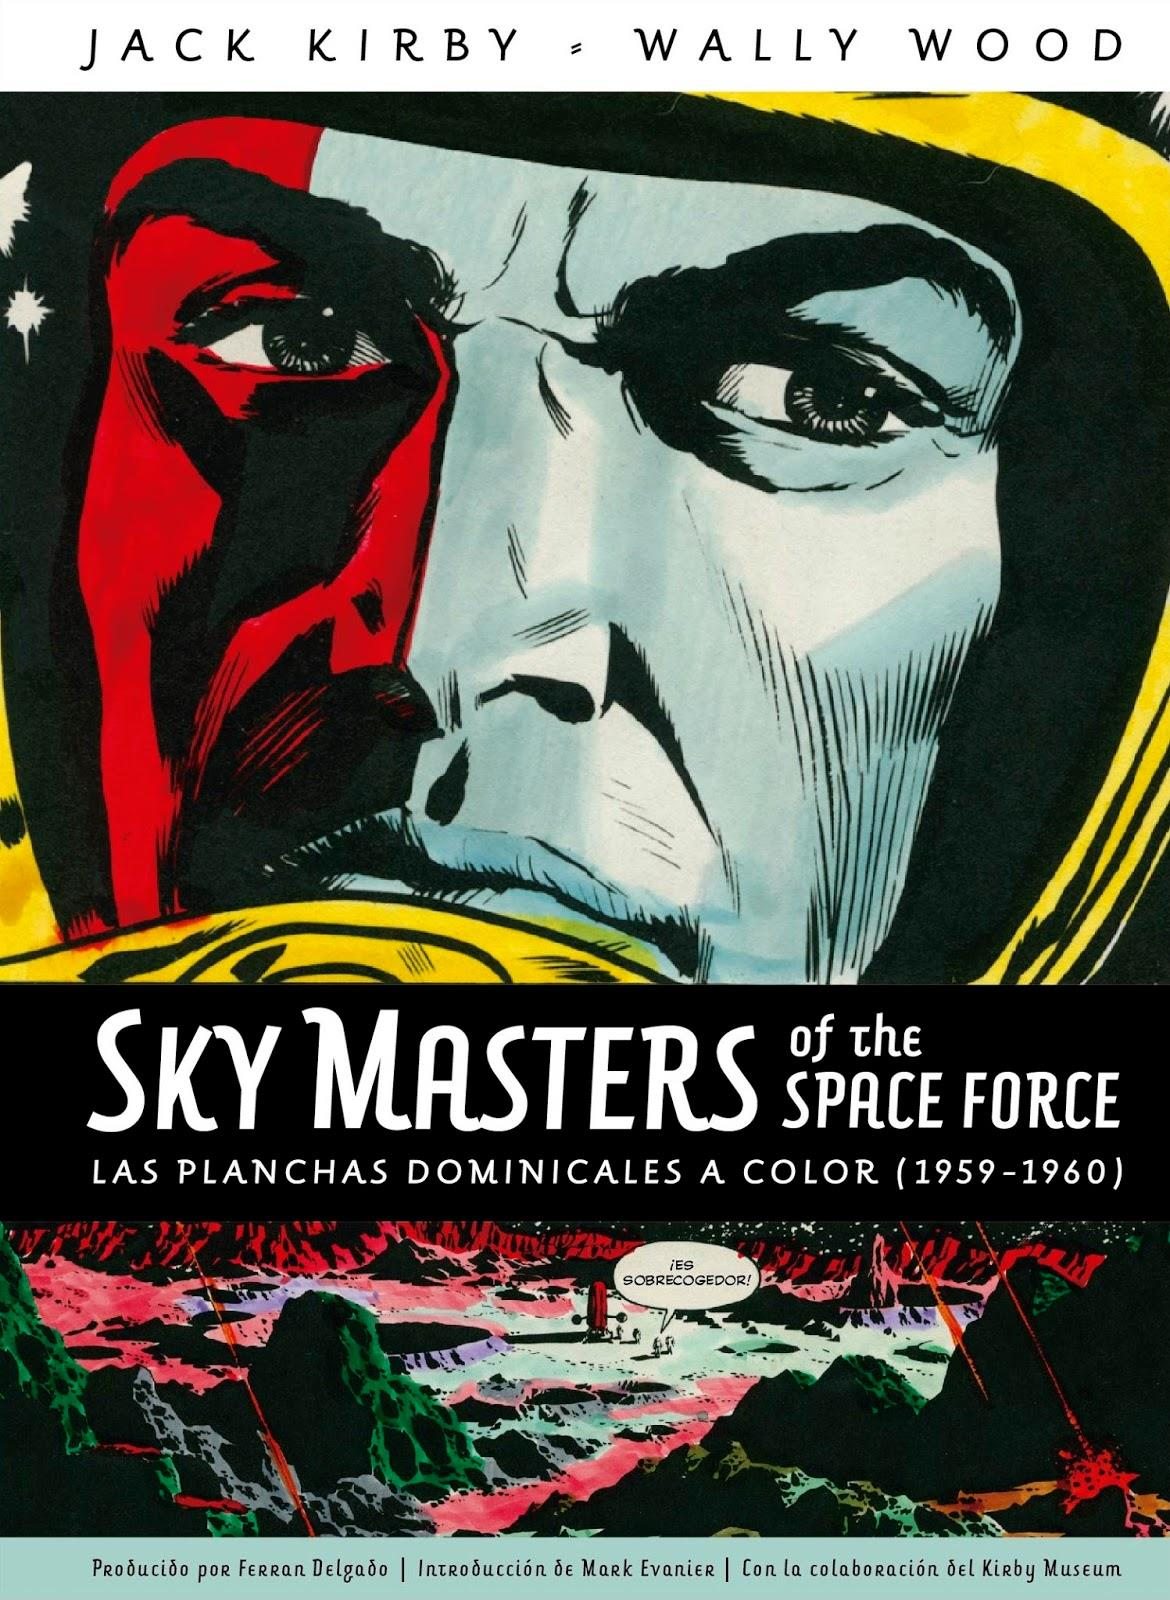 Sky Masters of the Space Force. Las planchas dominicales a color | Terra de Còmic - Tu tienda de cómics online especializada en cómics, manga y merchandising